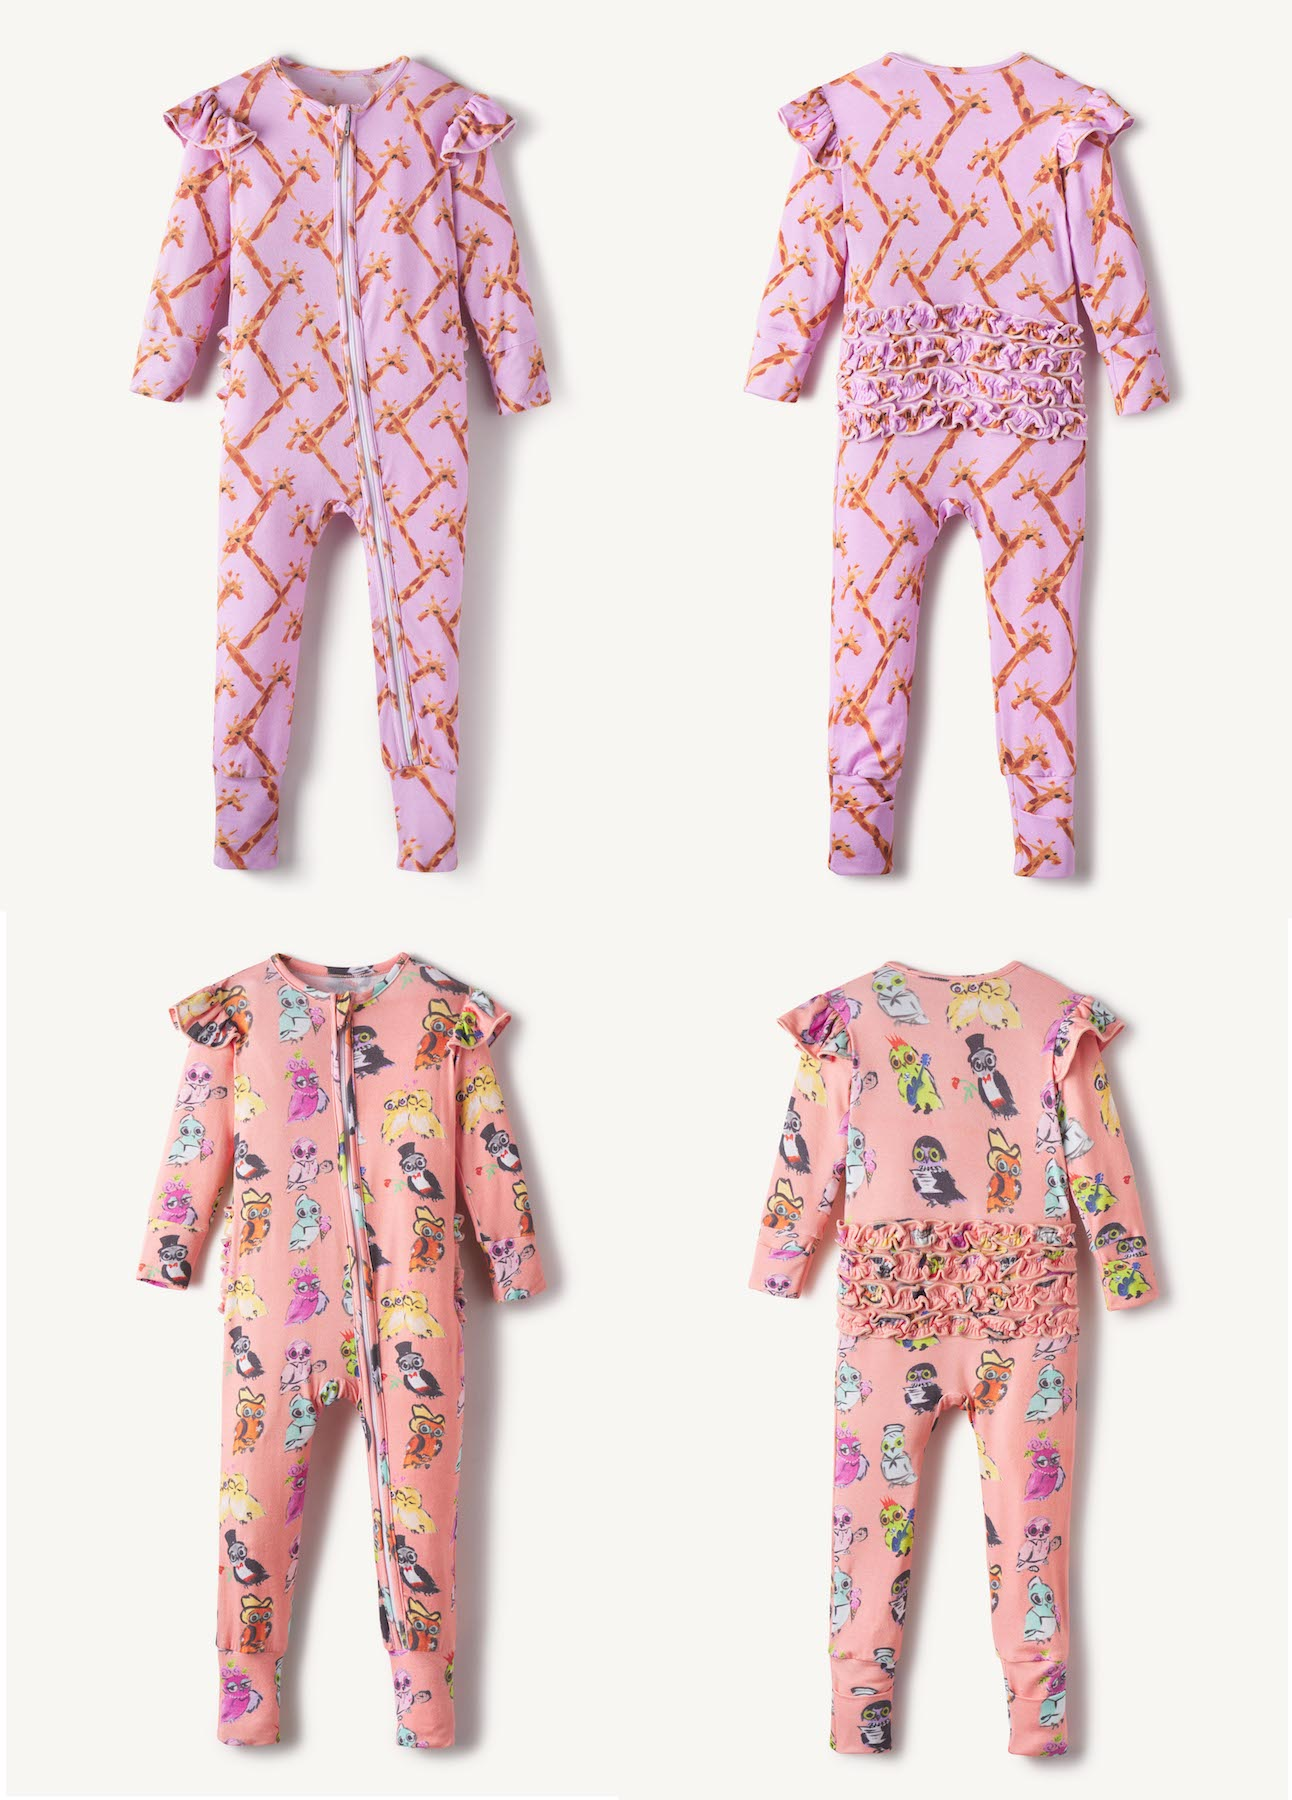 Gracyn-Sky-Children-Pinwall-Pin-Wall-Flat-Lay-Damion-Lloyd-Photography-Commercial-Product-Laydown-Apparel-Clothing-Los-Angeles-Orange-County-Onesie